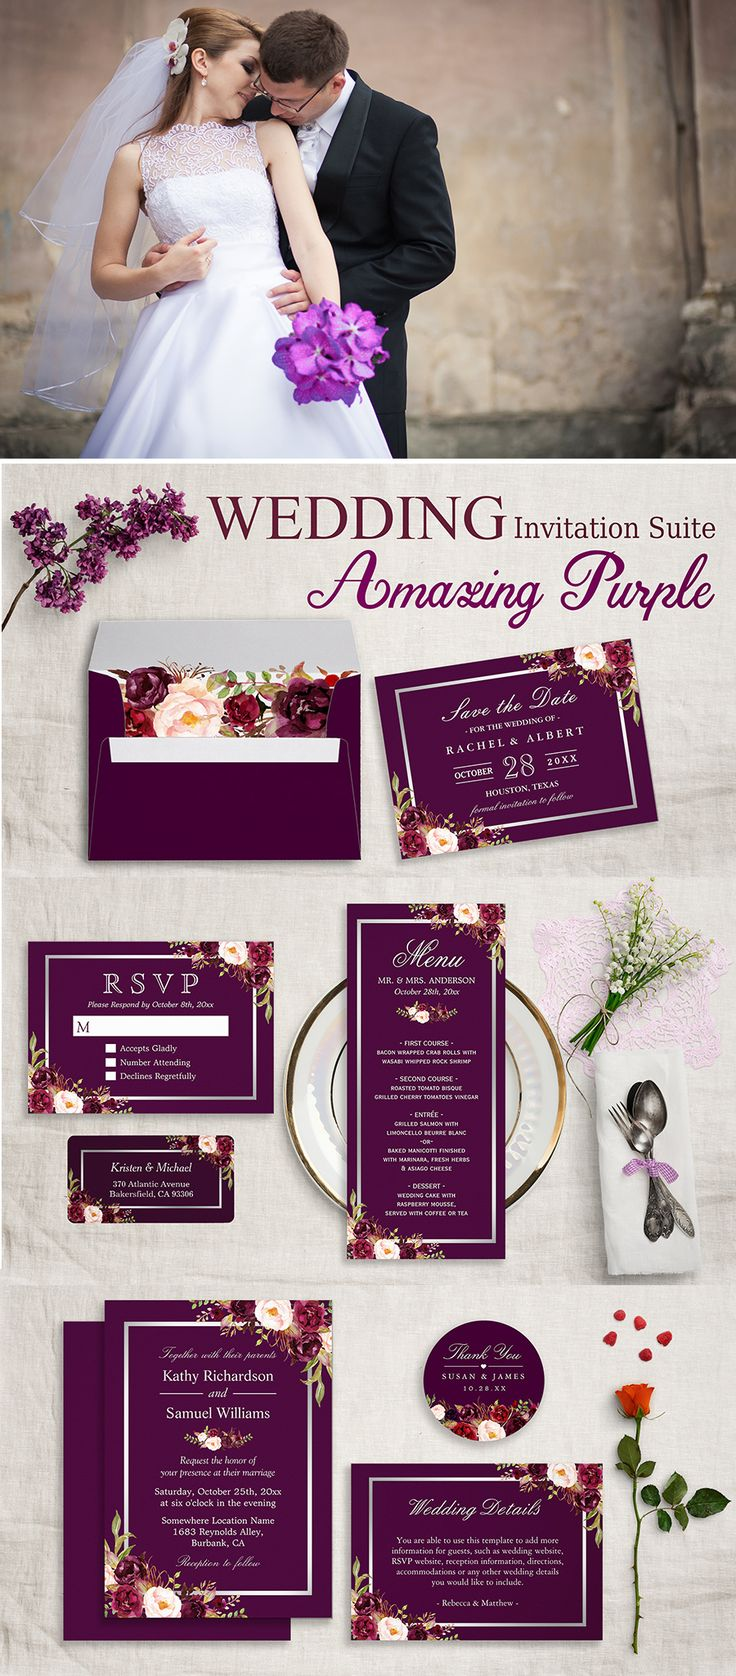 wildflower wedding invitation templates%0A A Plum Purple Floral Silver Gray Invitation Suite Invitation Suite  with  items from invitations to